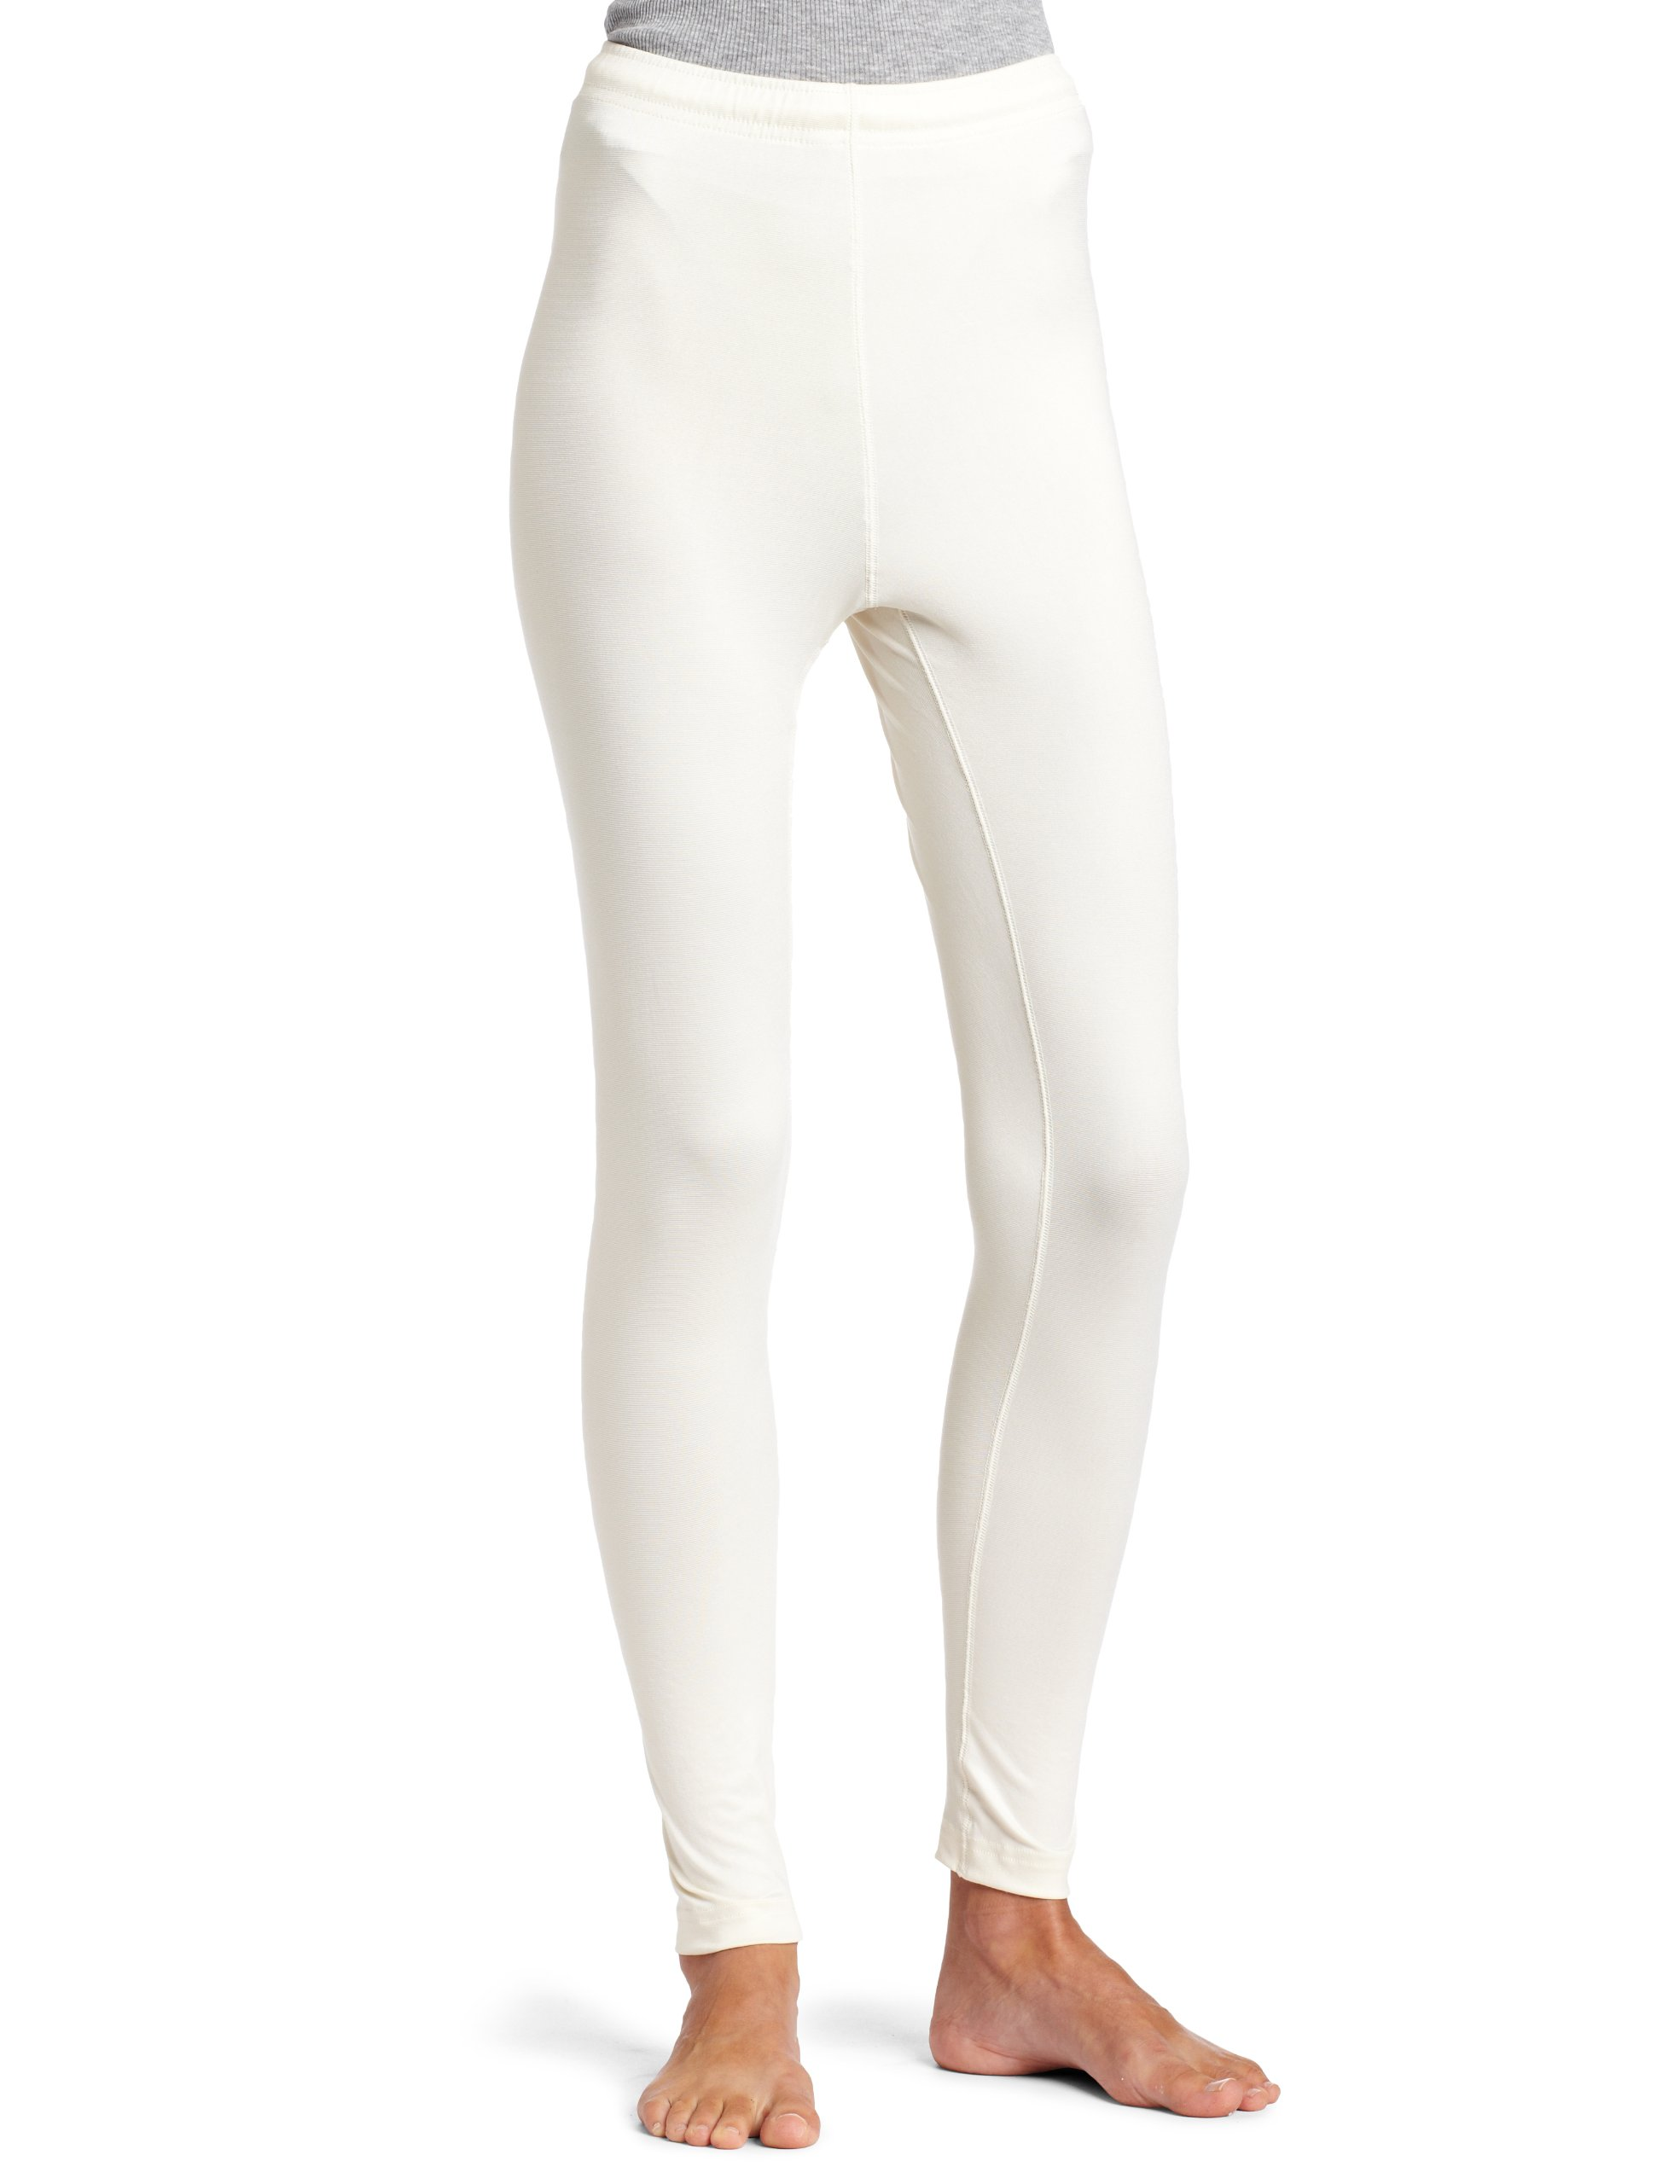 Duofold Women's Midweight Ankle Length Bottom,Pearl,Large